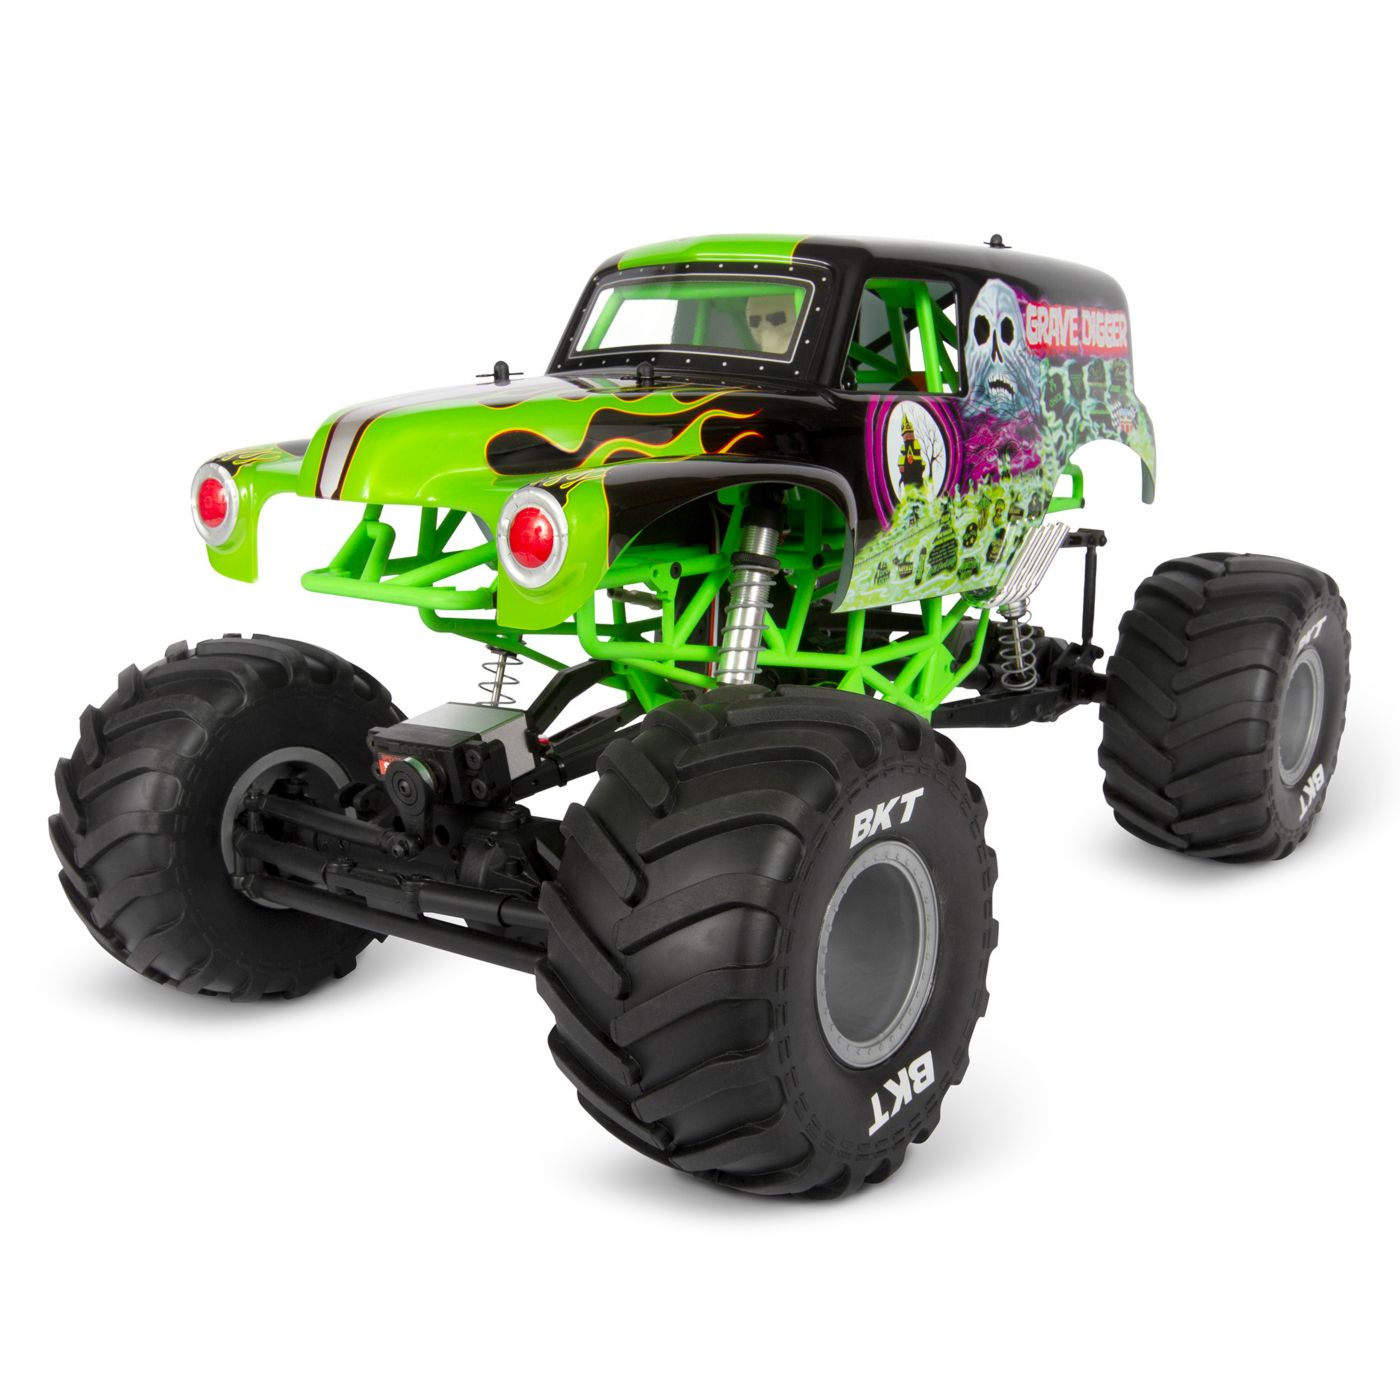 Refreshed for 2020: Axial's SMT10 Grave Digger RTR Monster Truck